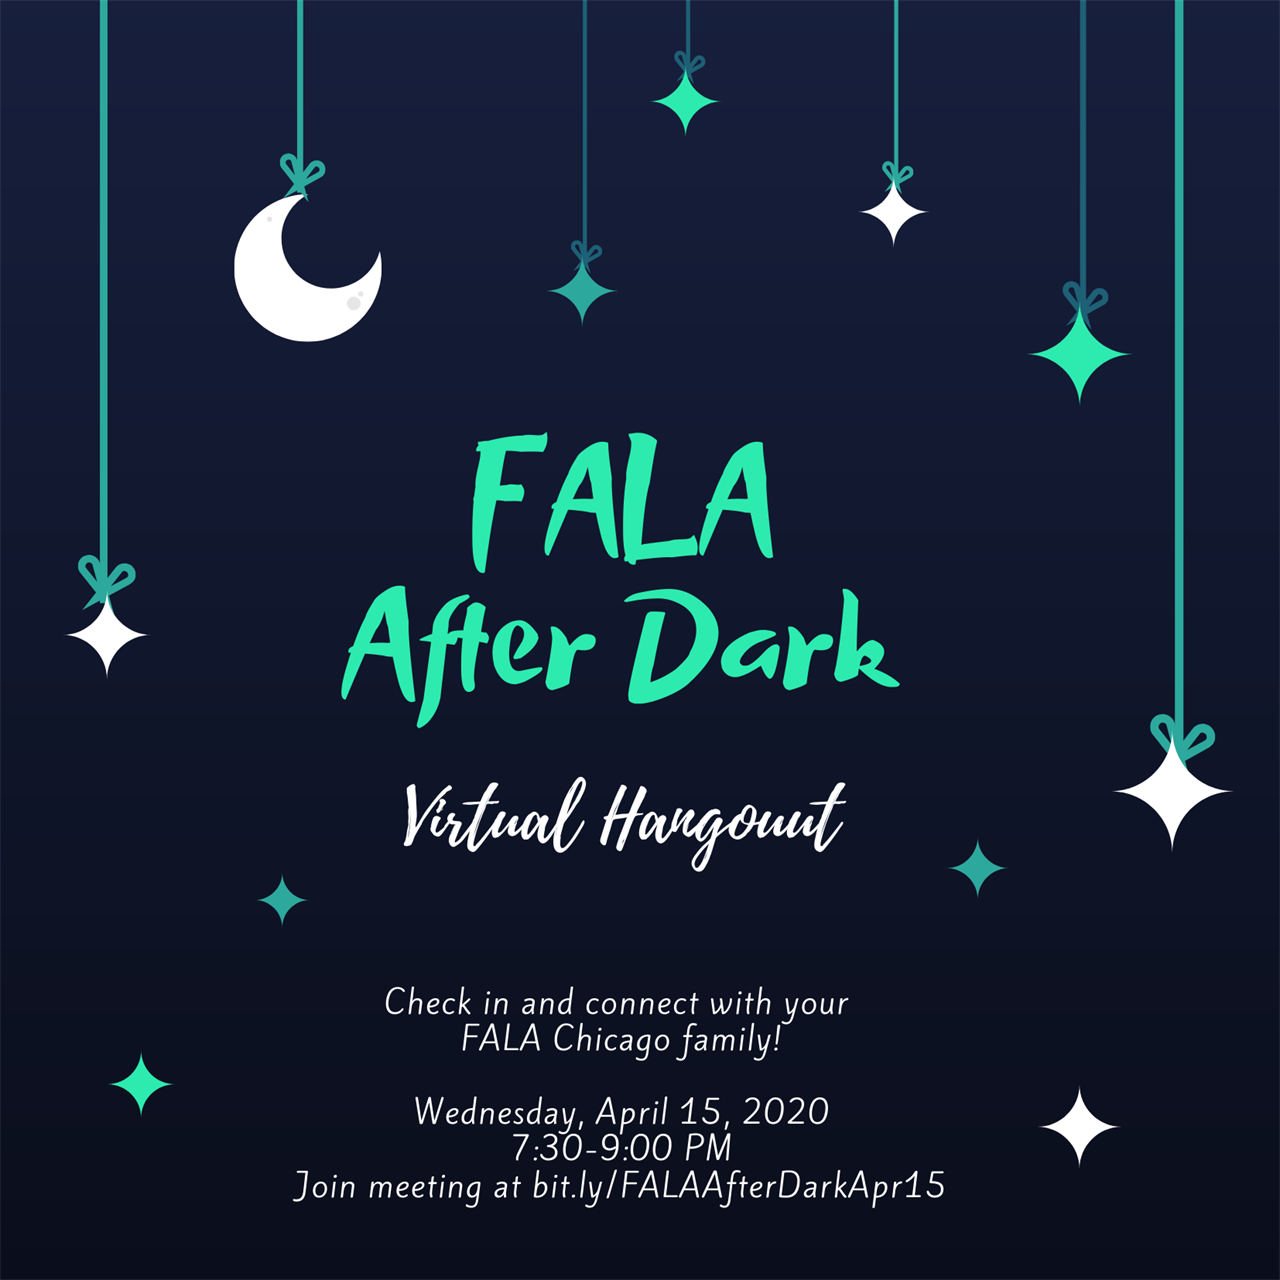 FALA After Dark Virtual Hangout